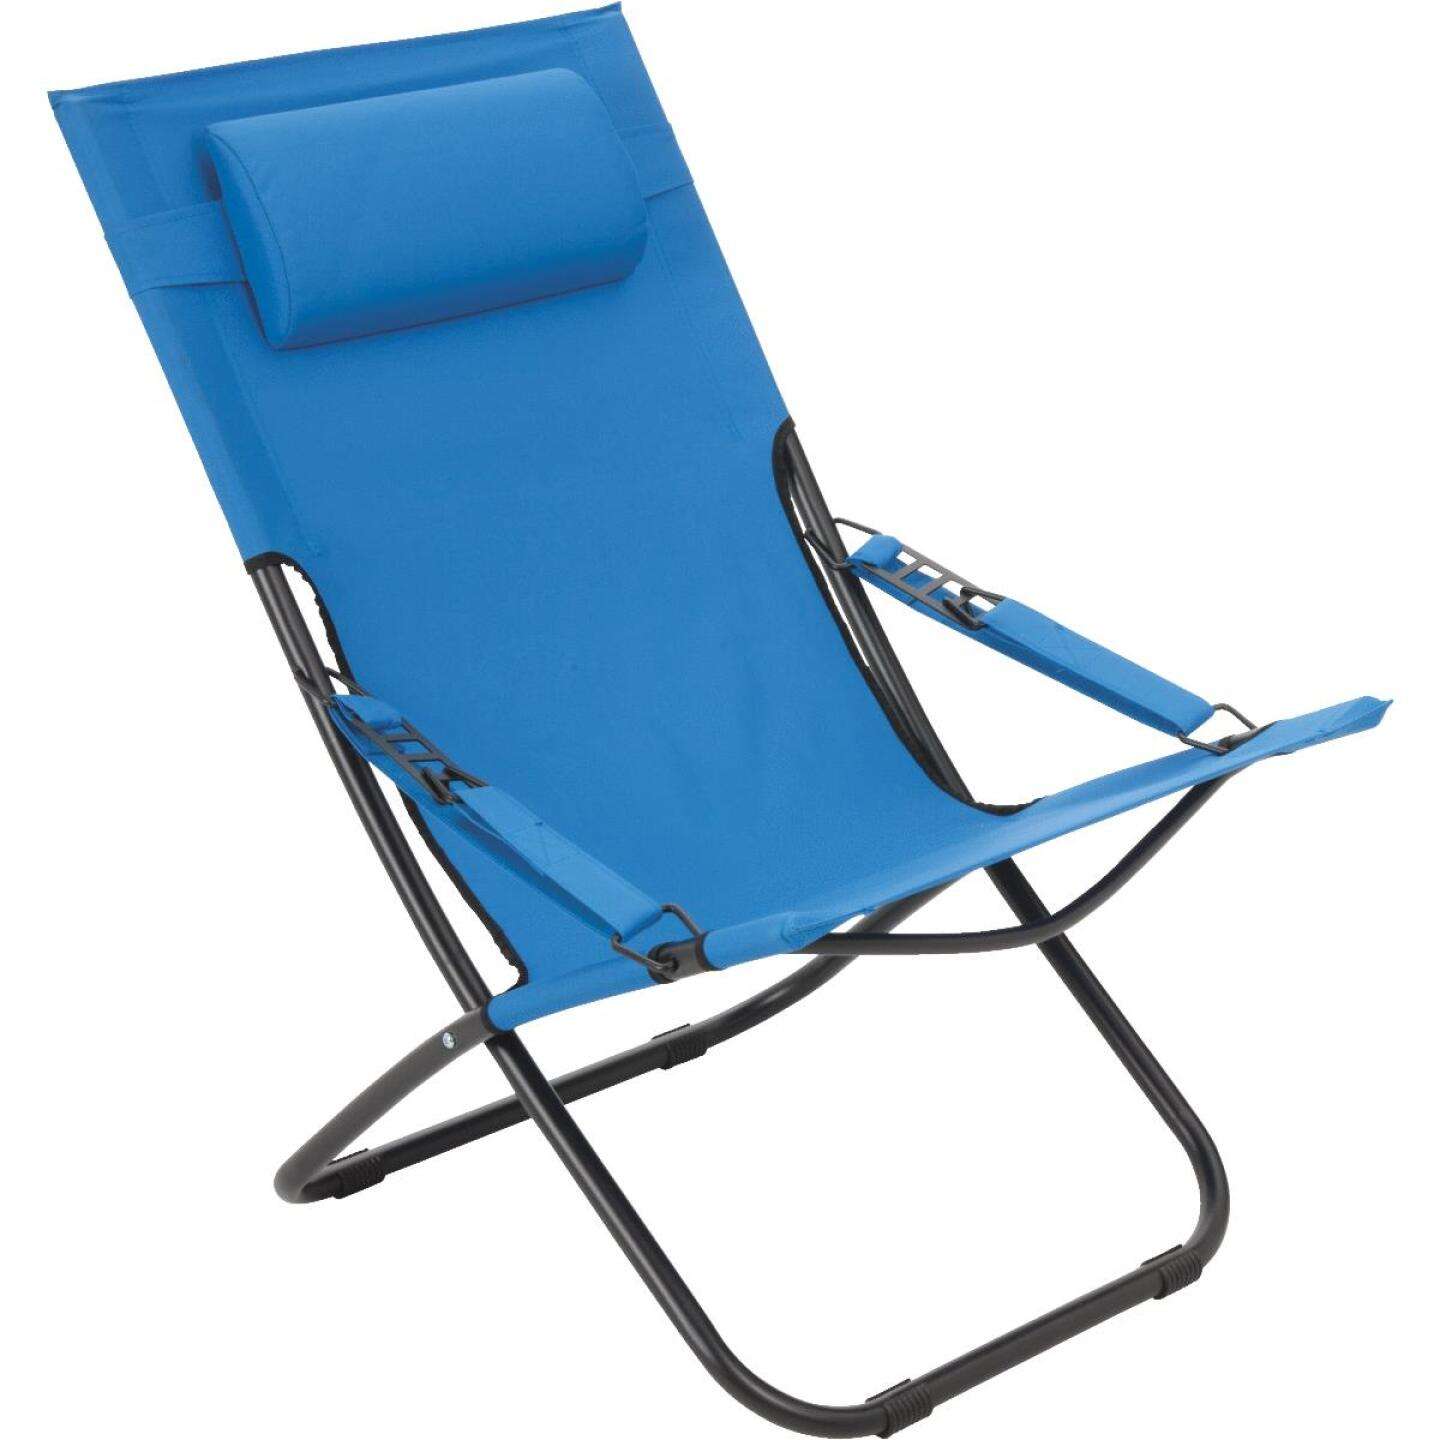 Prime Outdoor Expressions Folding Blue Hammock Chair With Headrest Bralicious Painted Fabric Chair Ideas Braliciousco